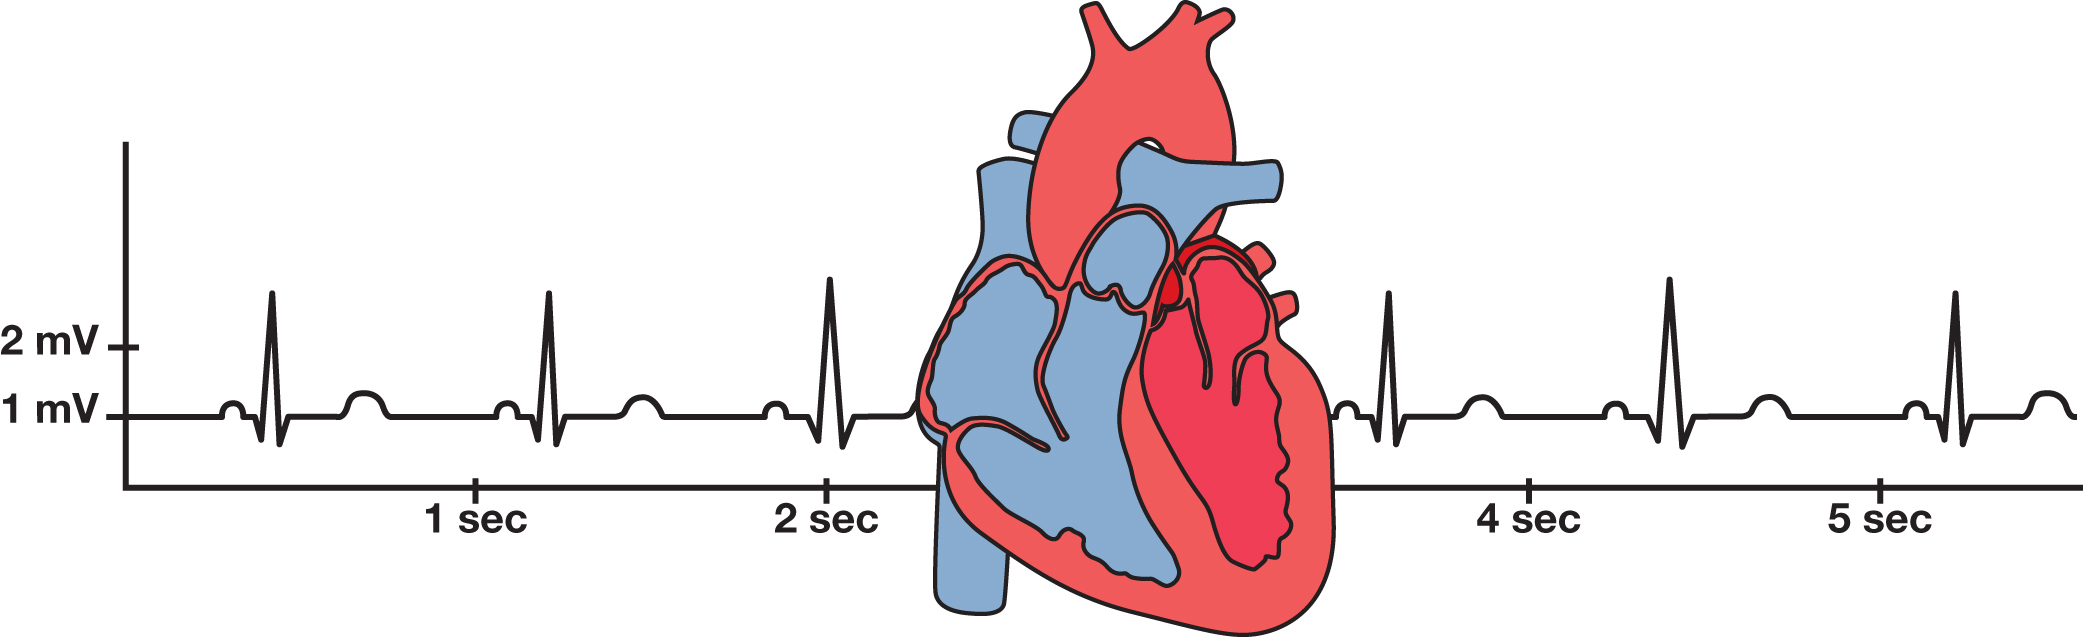 Studying Heart Function Using Electrocardiograms - Super Value Kit